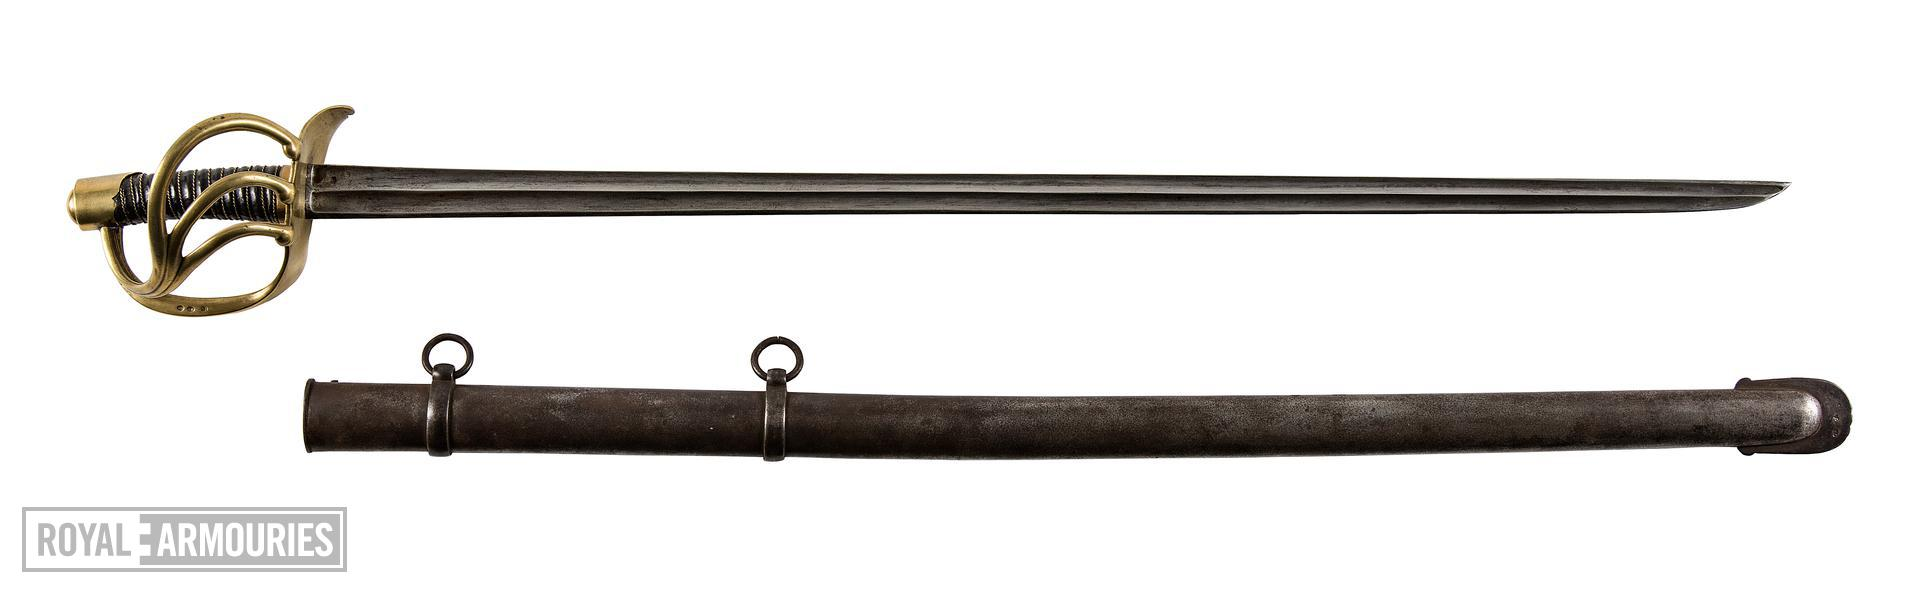 Sword  for Cavalry of the line trooper, Pattern An XIII, France, 1802-1816 (IX.7047) and scabbard for the Carabiniers or Reserve trooper's sword. Model 1854 (IX.2065)